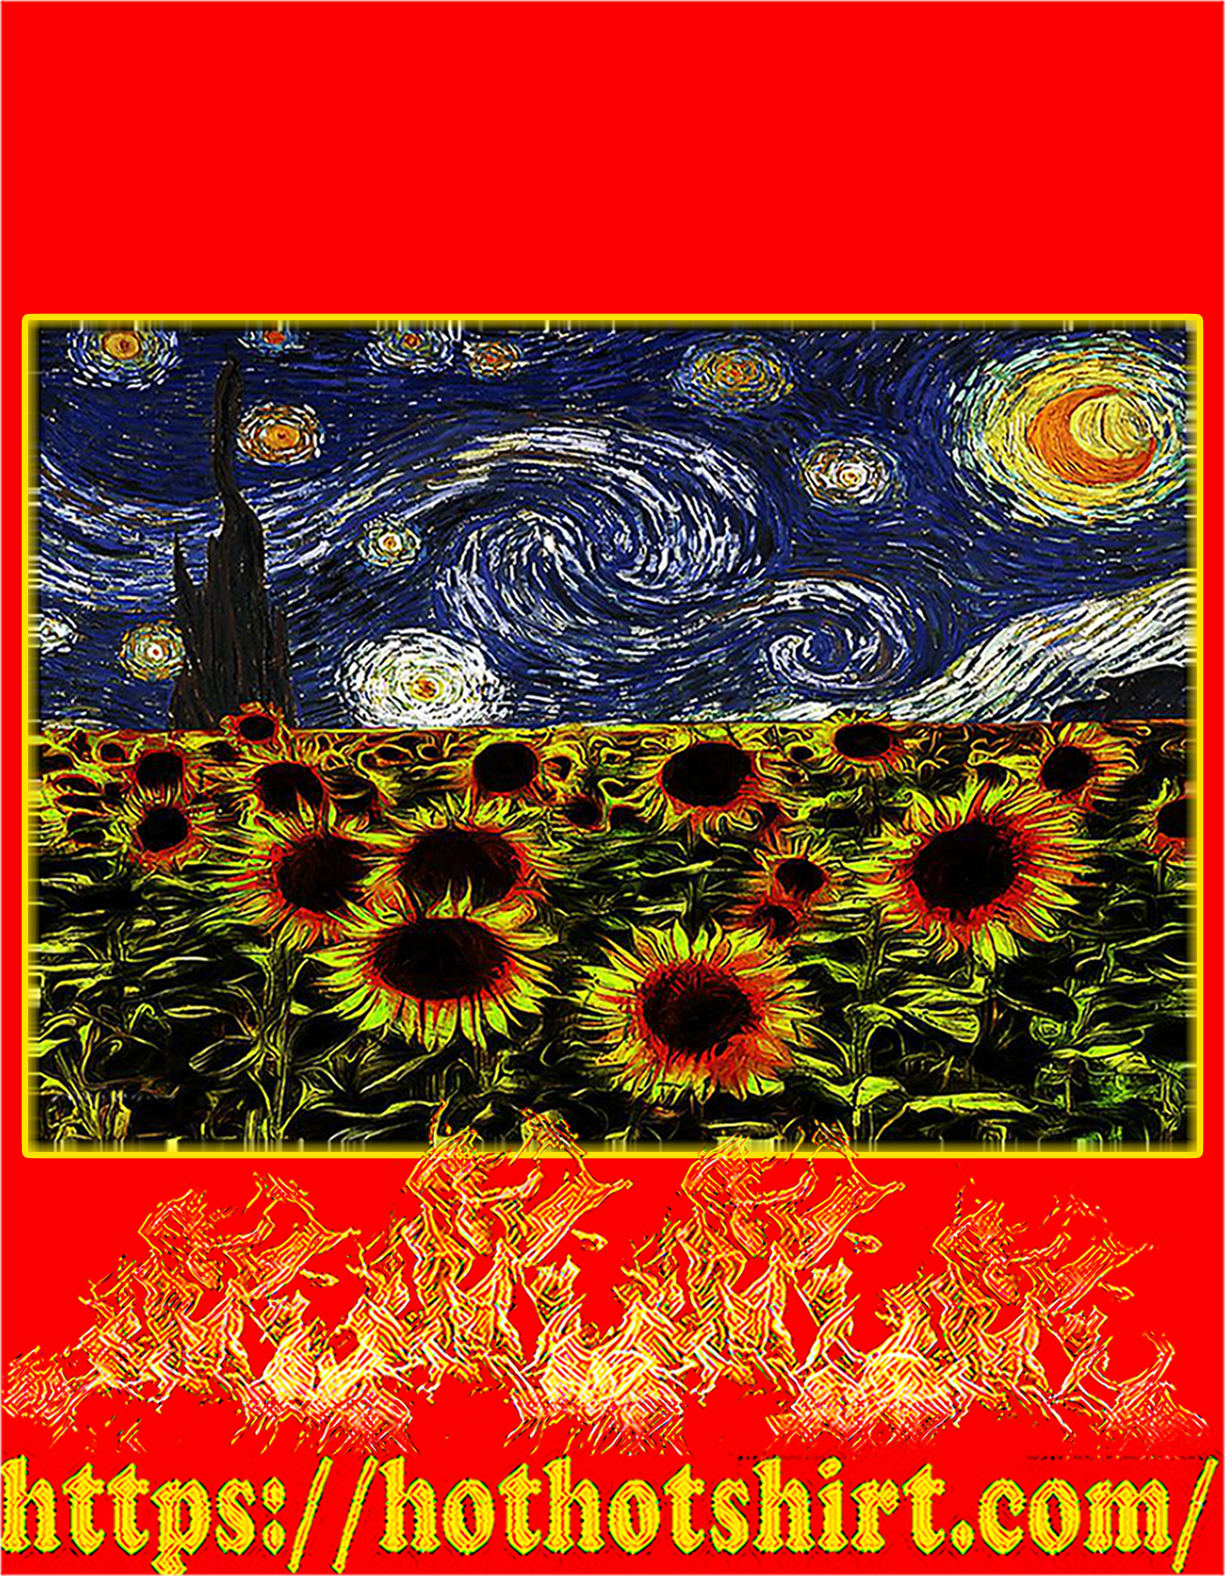 Sunflowers starry night van gogh poster - A4